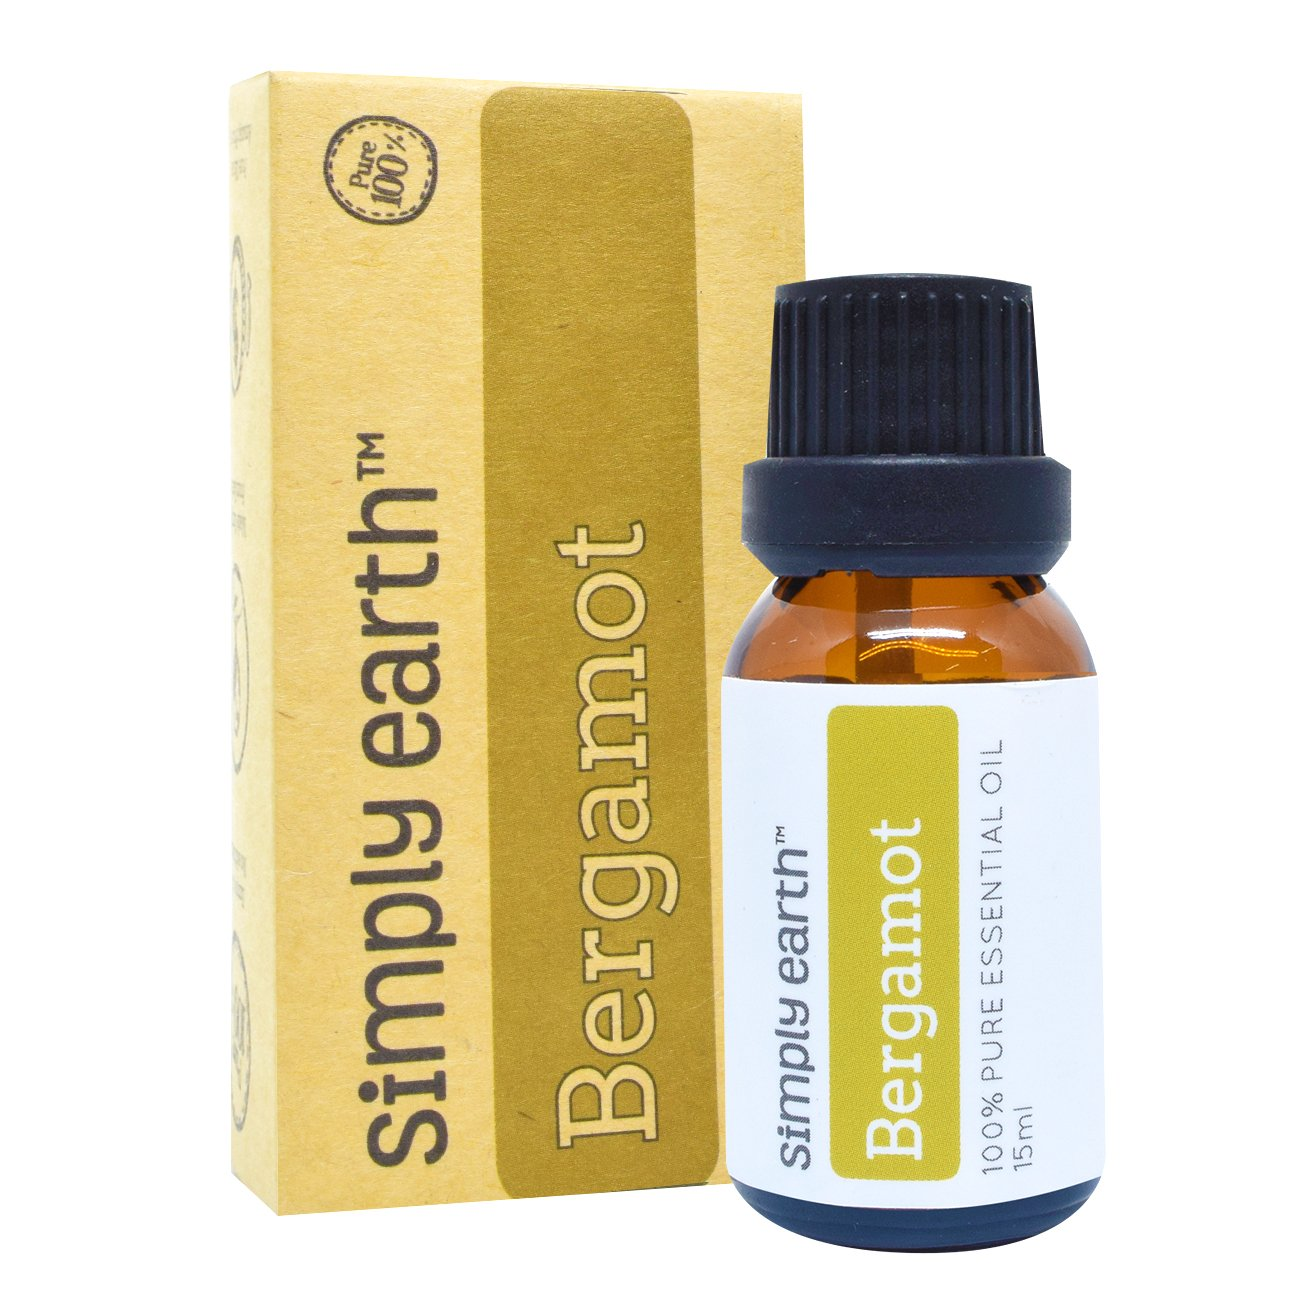 Simply Earth Bergamot Essential Oil - 15 ml, 100% Pure Therapeutic Grade by